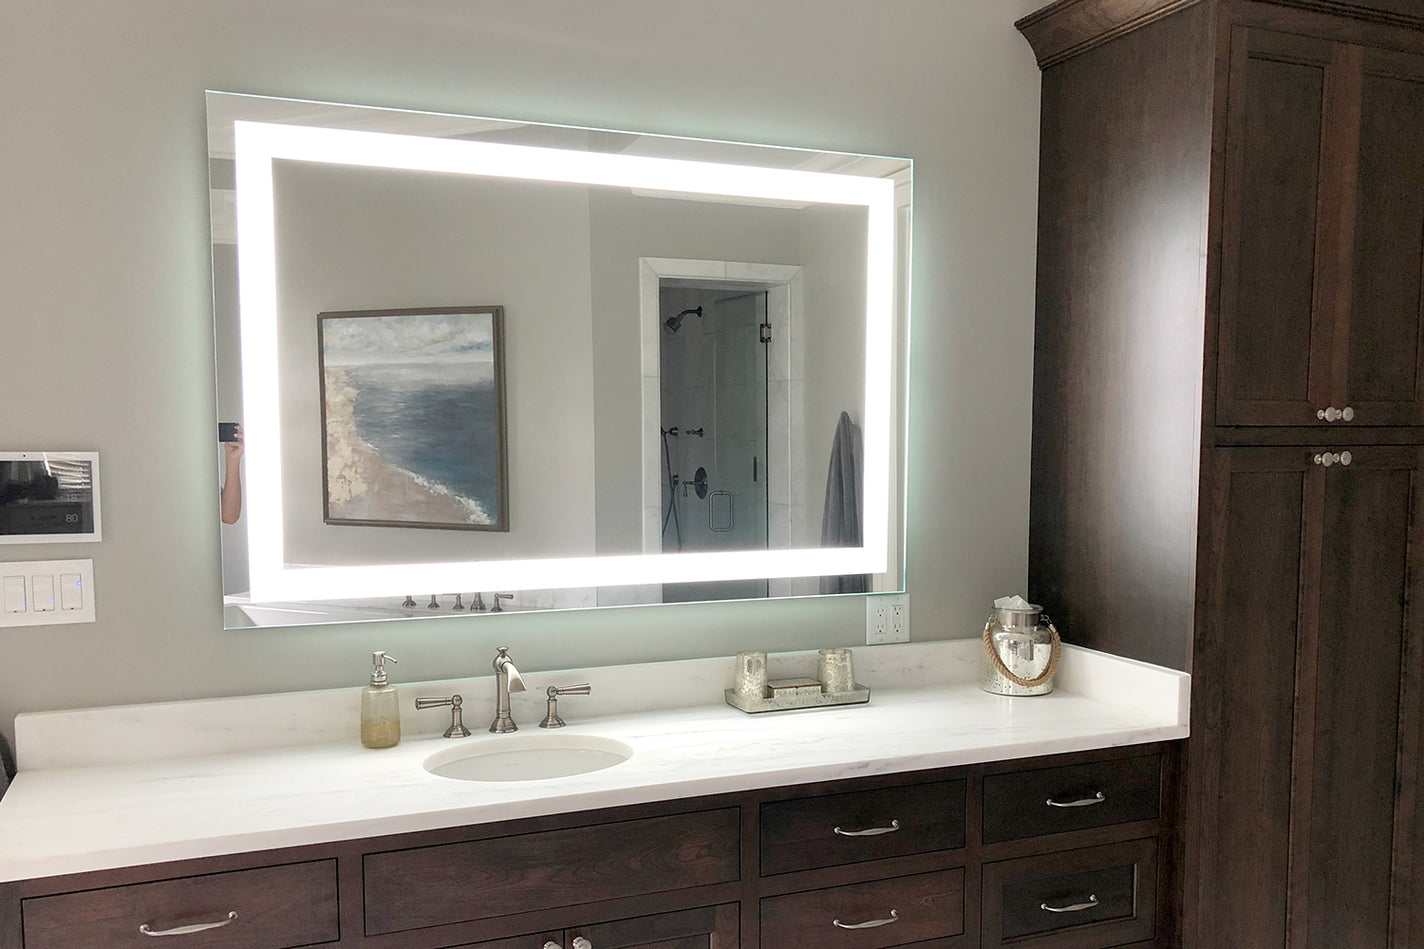 "Ove Decors Villon Led Bathroom Mirror: Front-Lighted LED Bathroom Vanity Mirror: 60"" X 40"